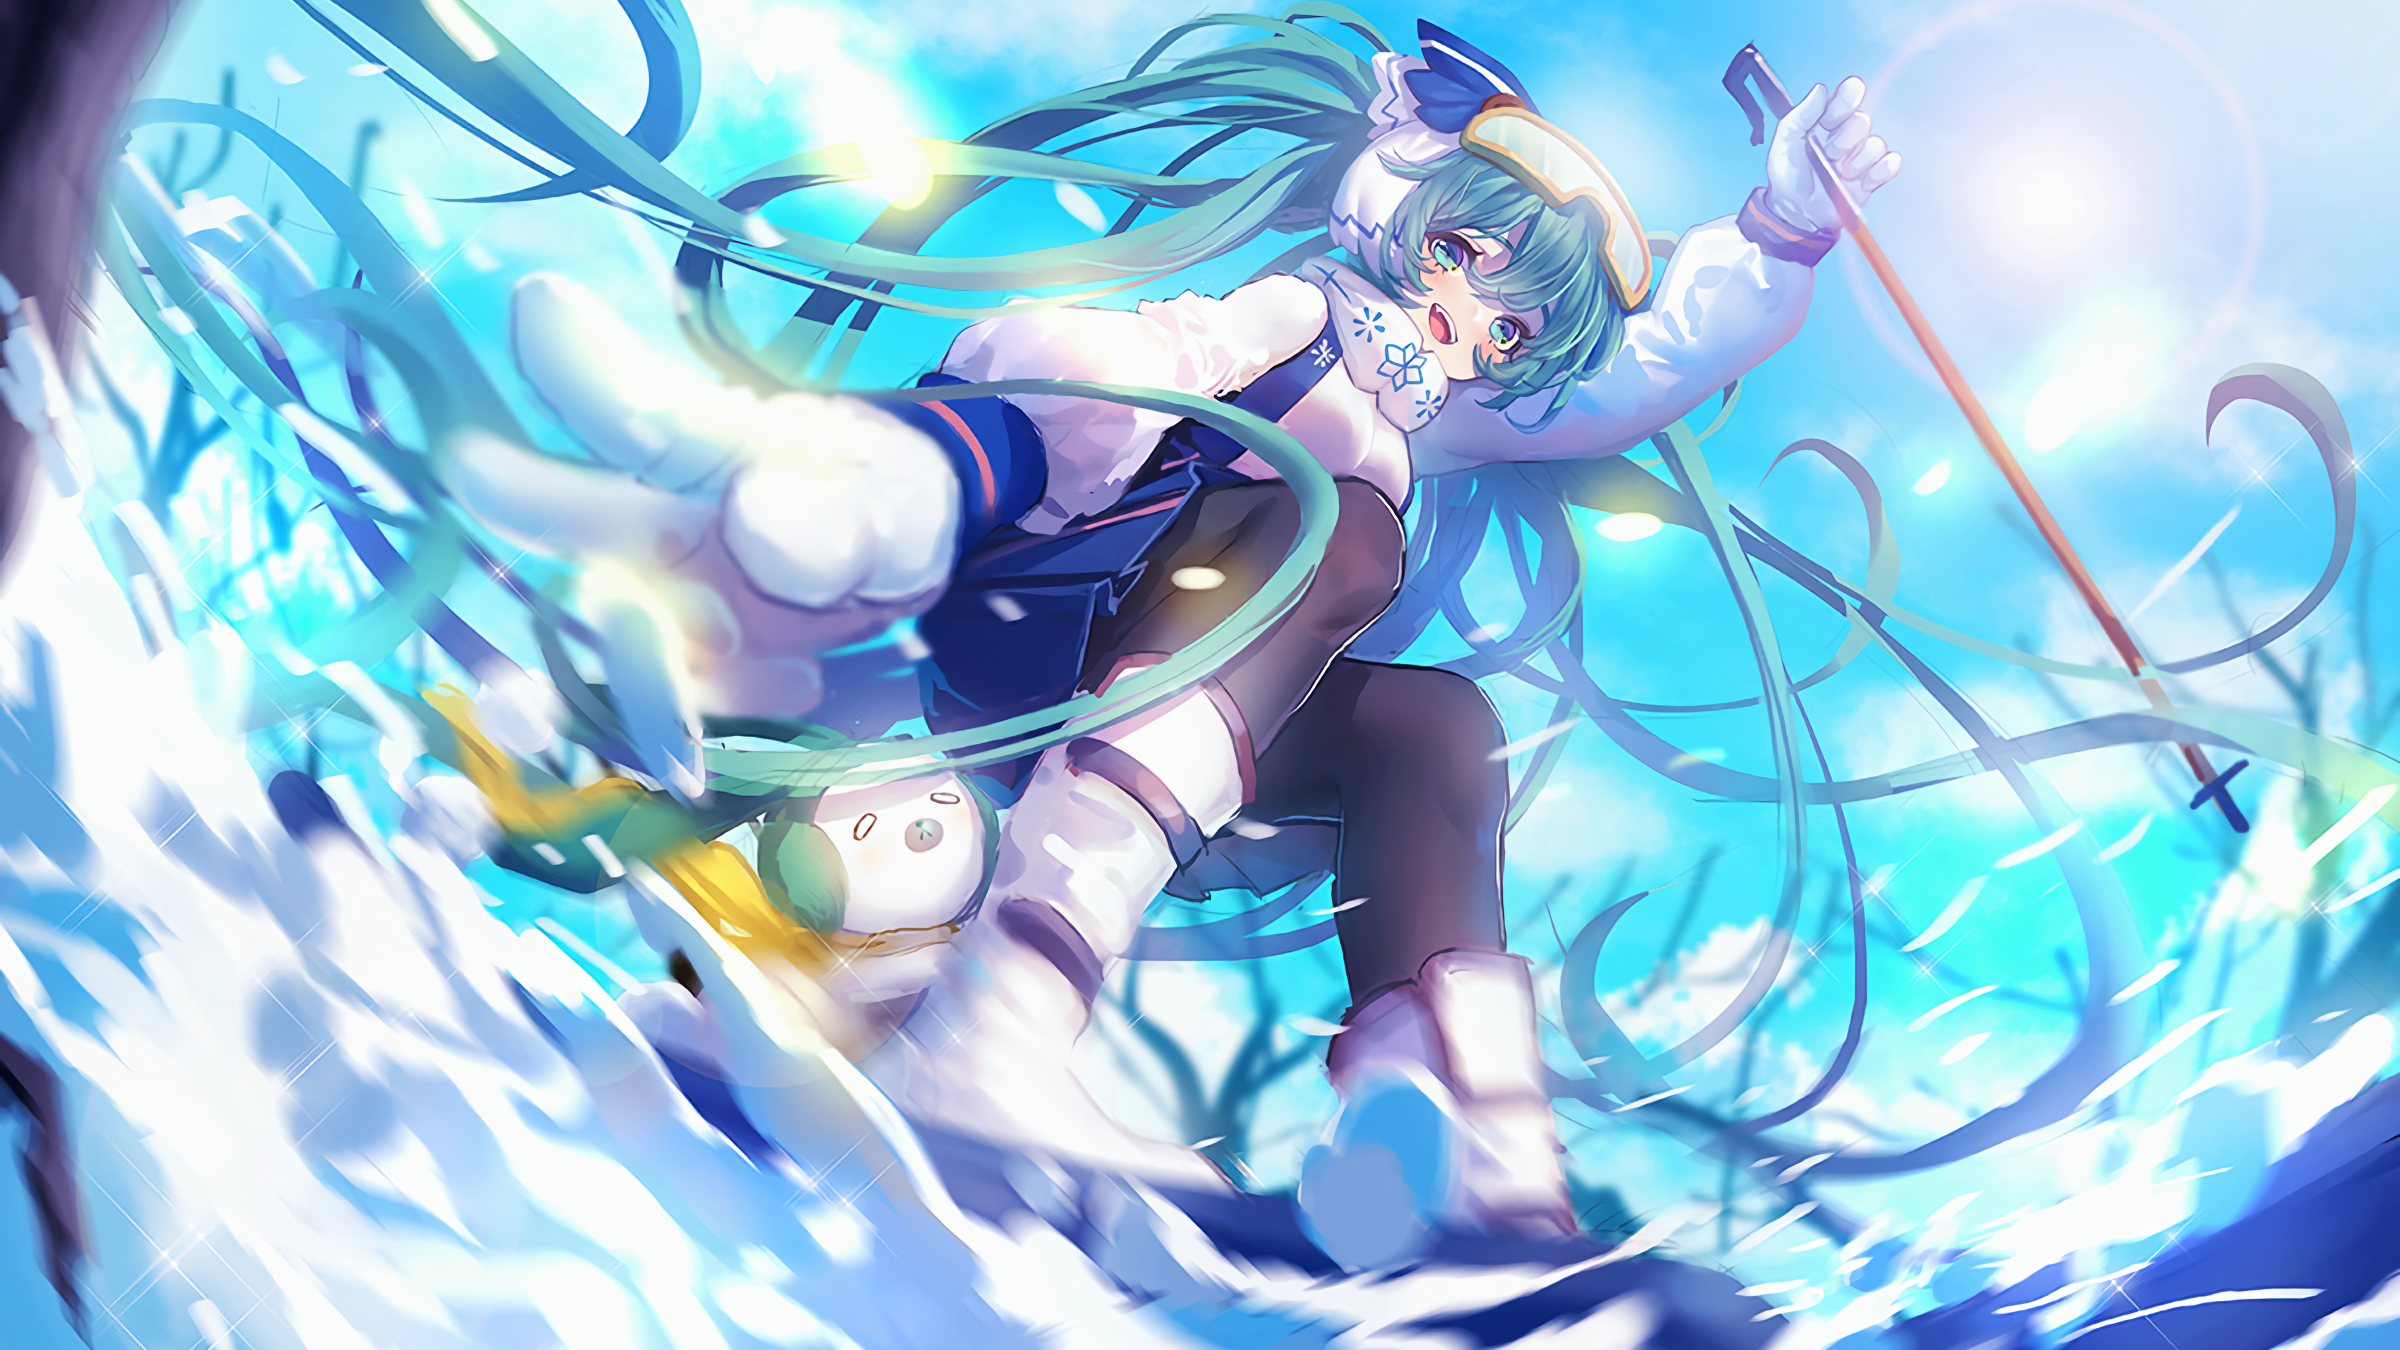 kaot quao ha¬nh aonh cho snow miku 2016 wallpaper